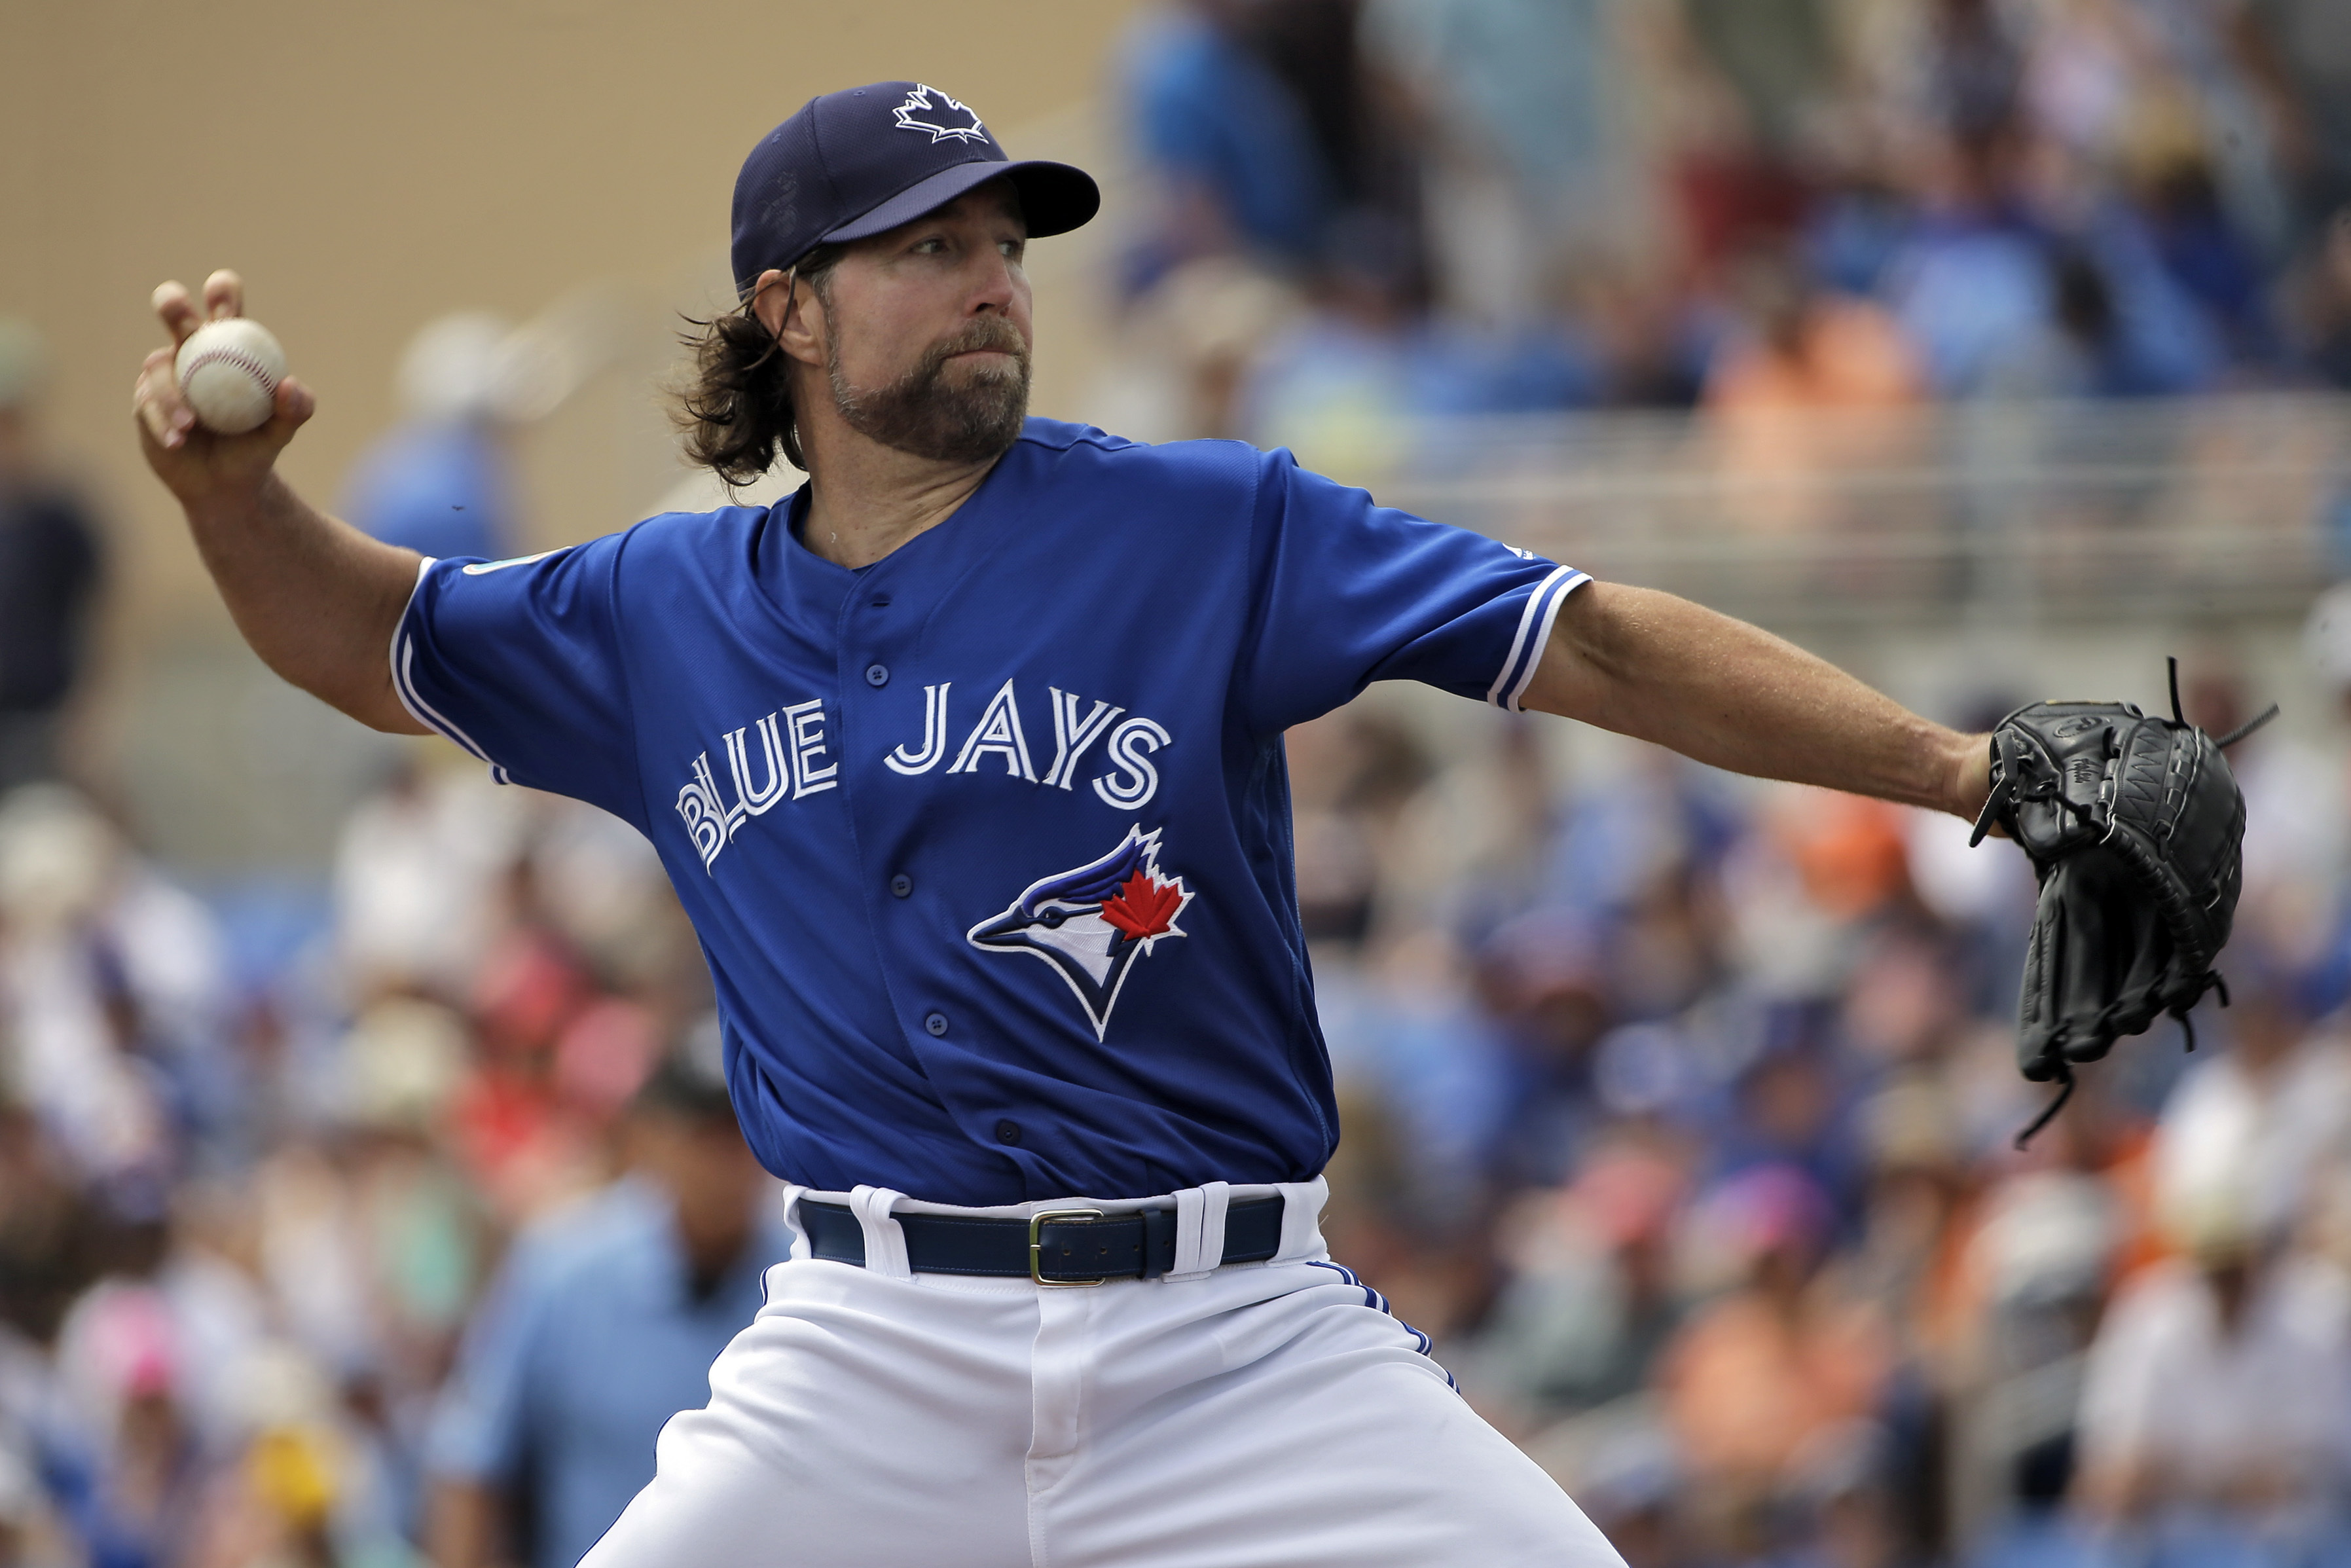 Toronto Blue Jays starting pitcher R.A. Dickey delivers to the Detroit Tigers during the first inning of a spring training baseball game Thursday, March 24, 2016, in Dunedin, Fla. (AP Photo/Chris O'Meara)